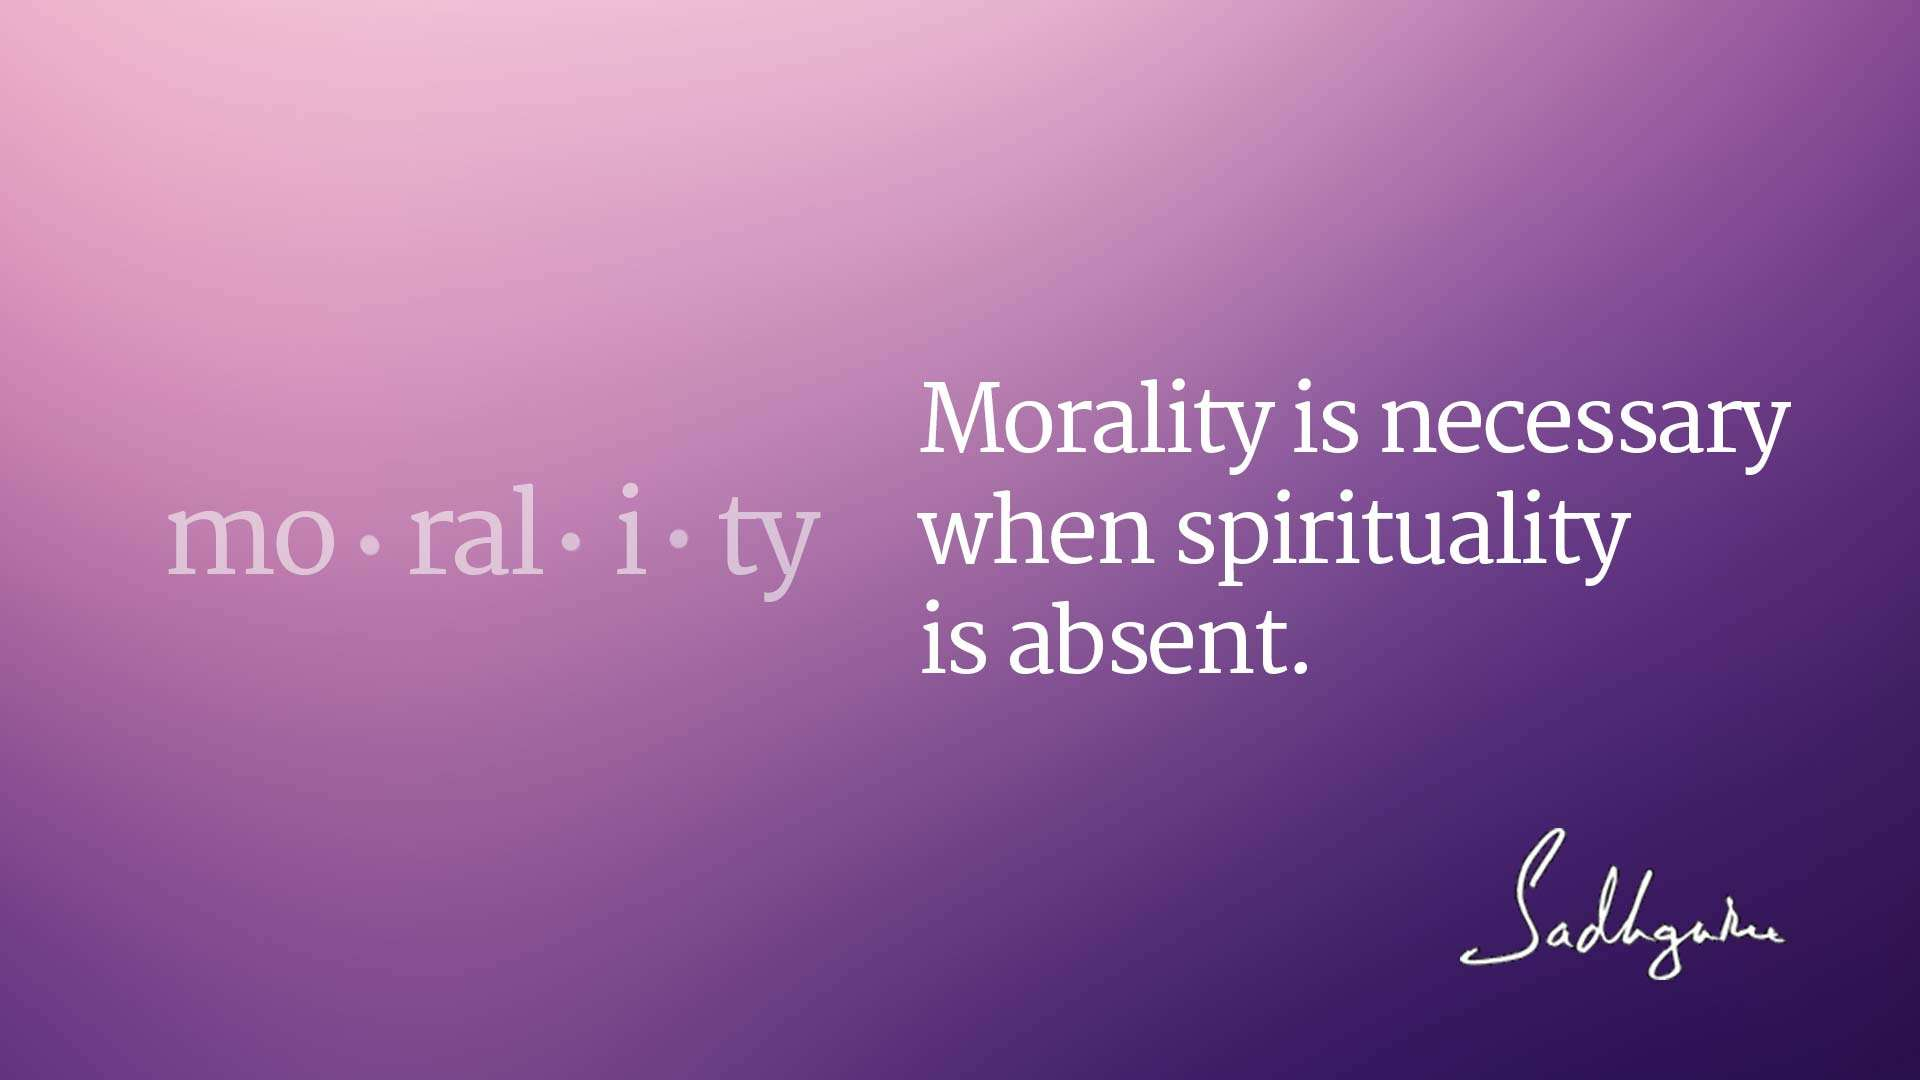 Quotes on Morality by Sadhguru